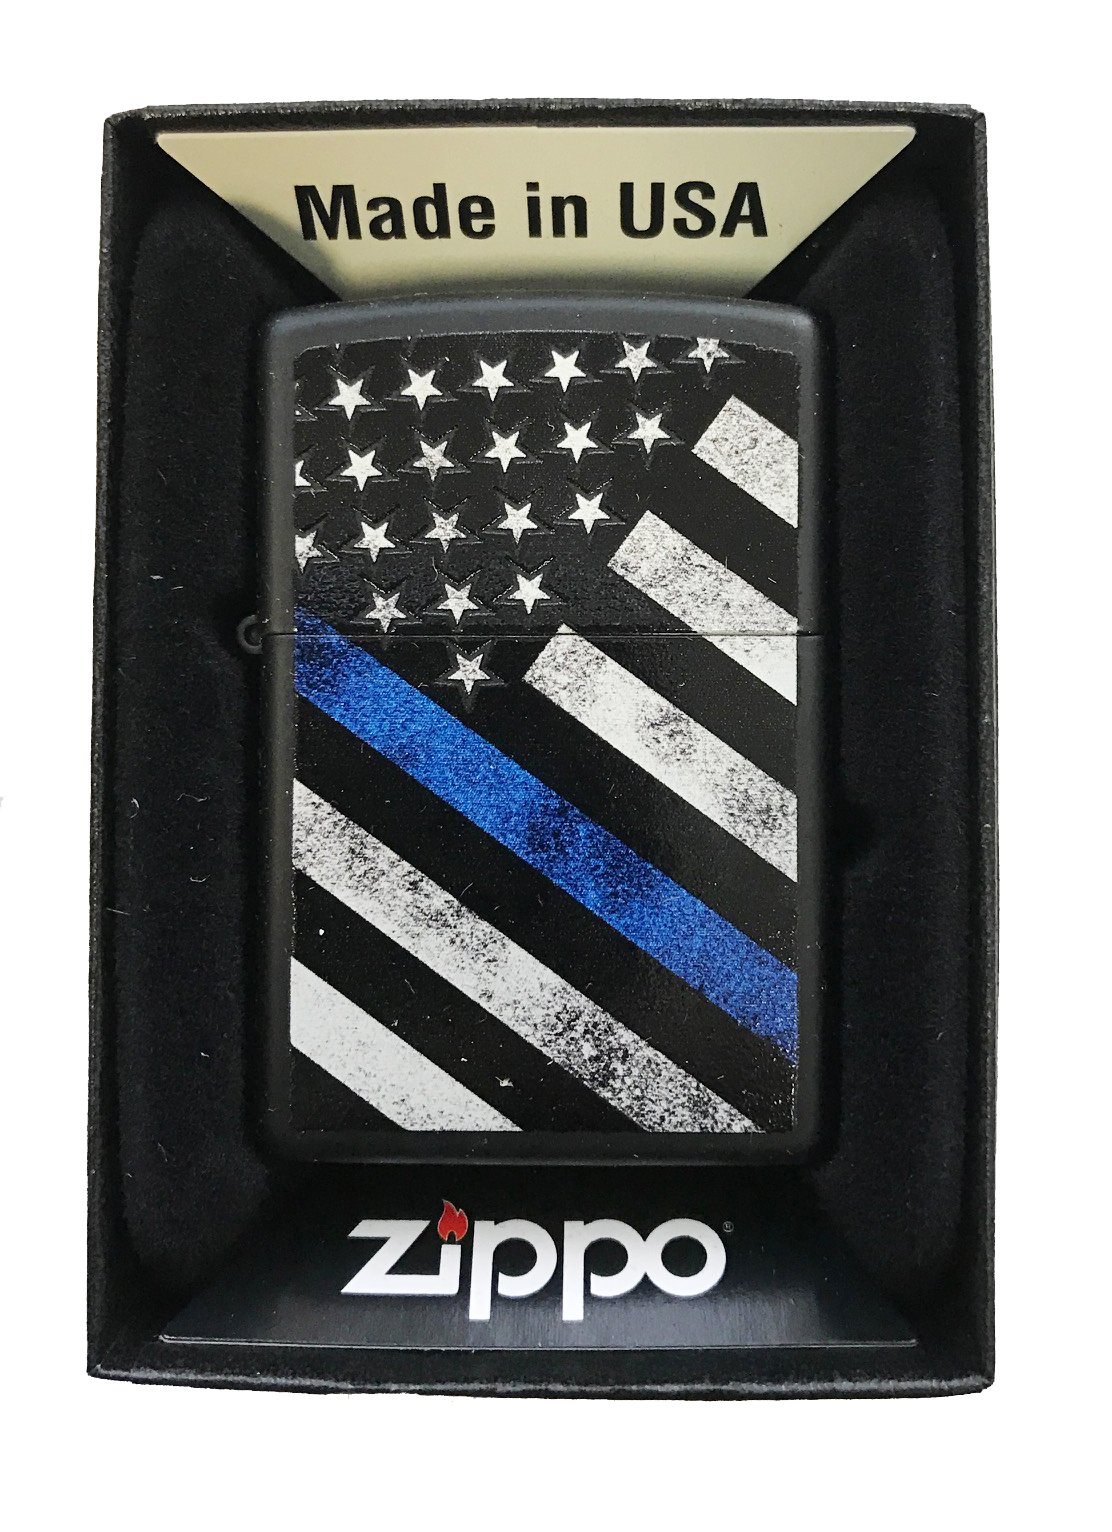 Zippo Custom Lighter - Blue Line Police Support USA Flag - Black Matte